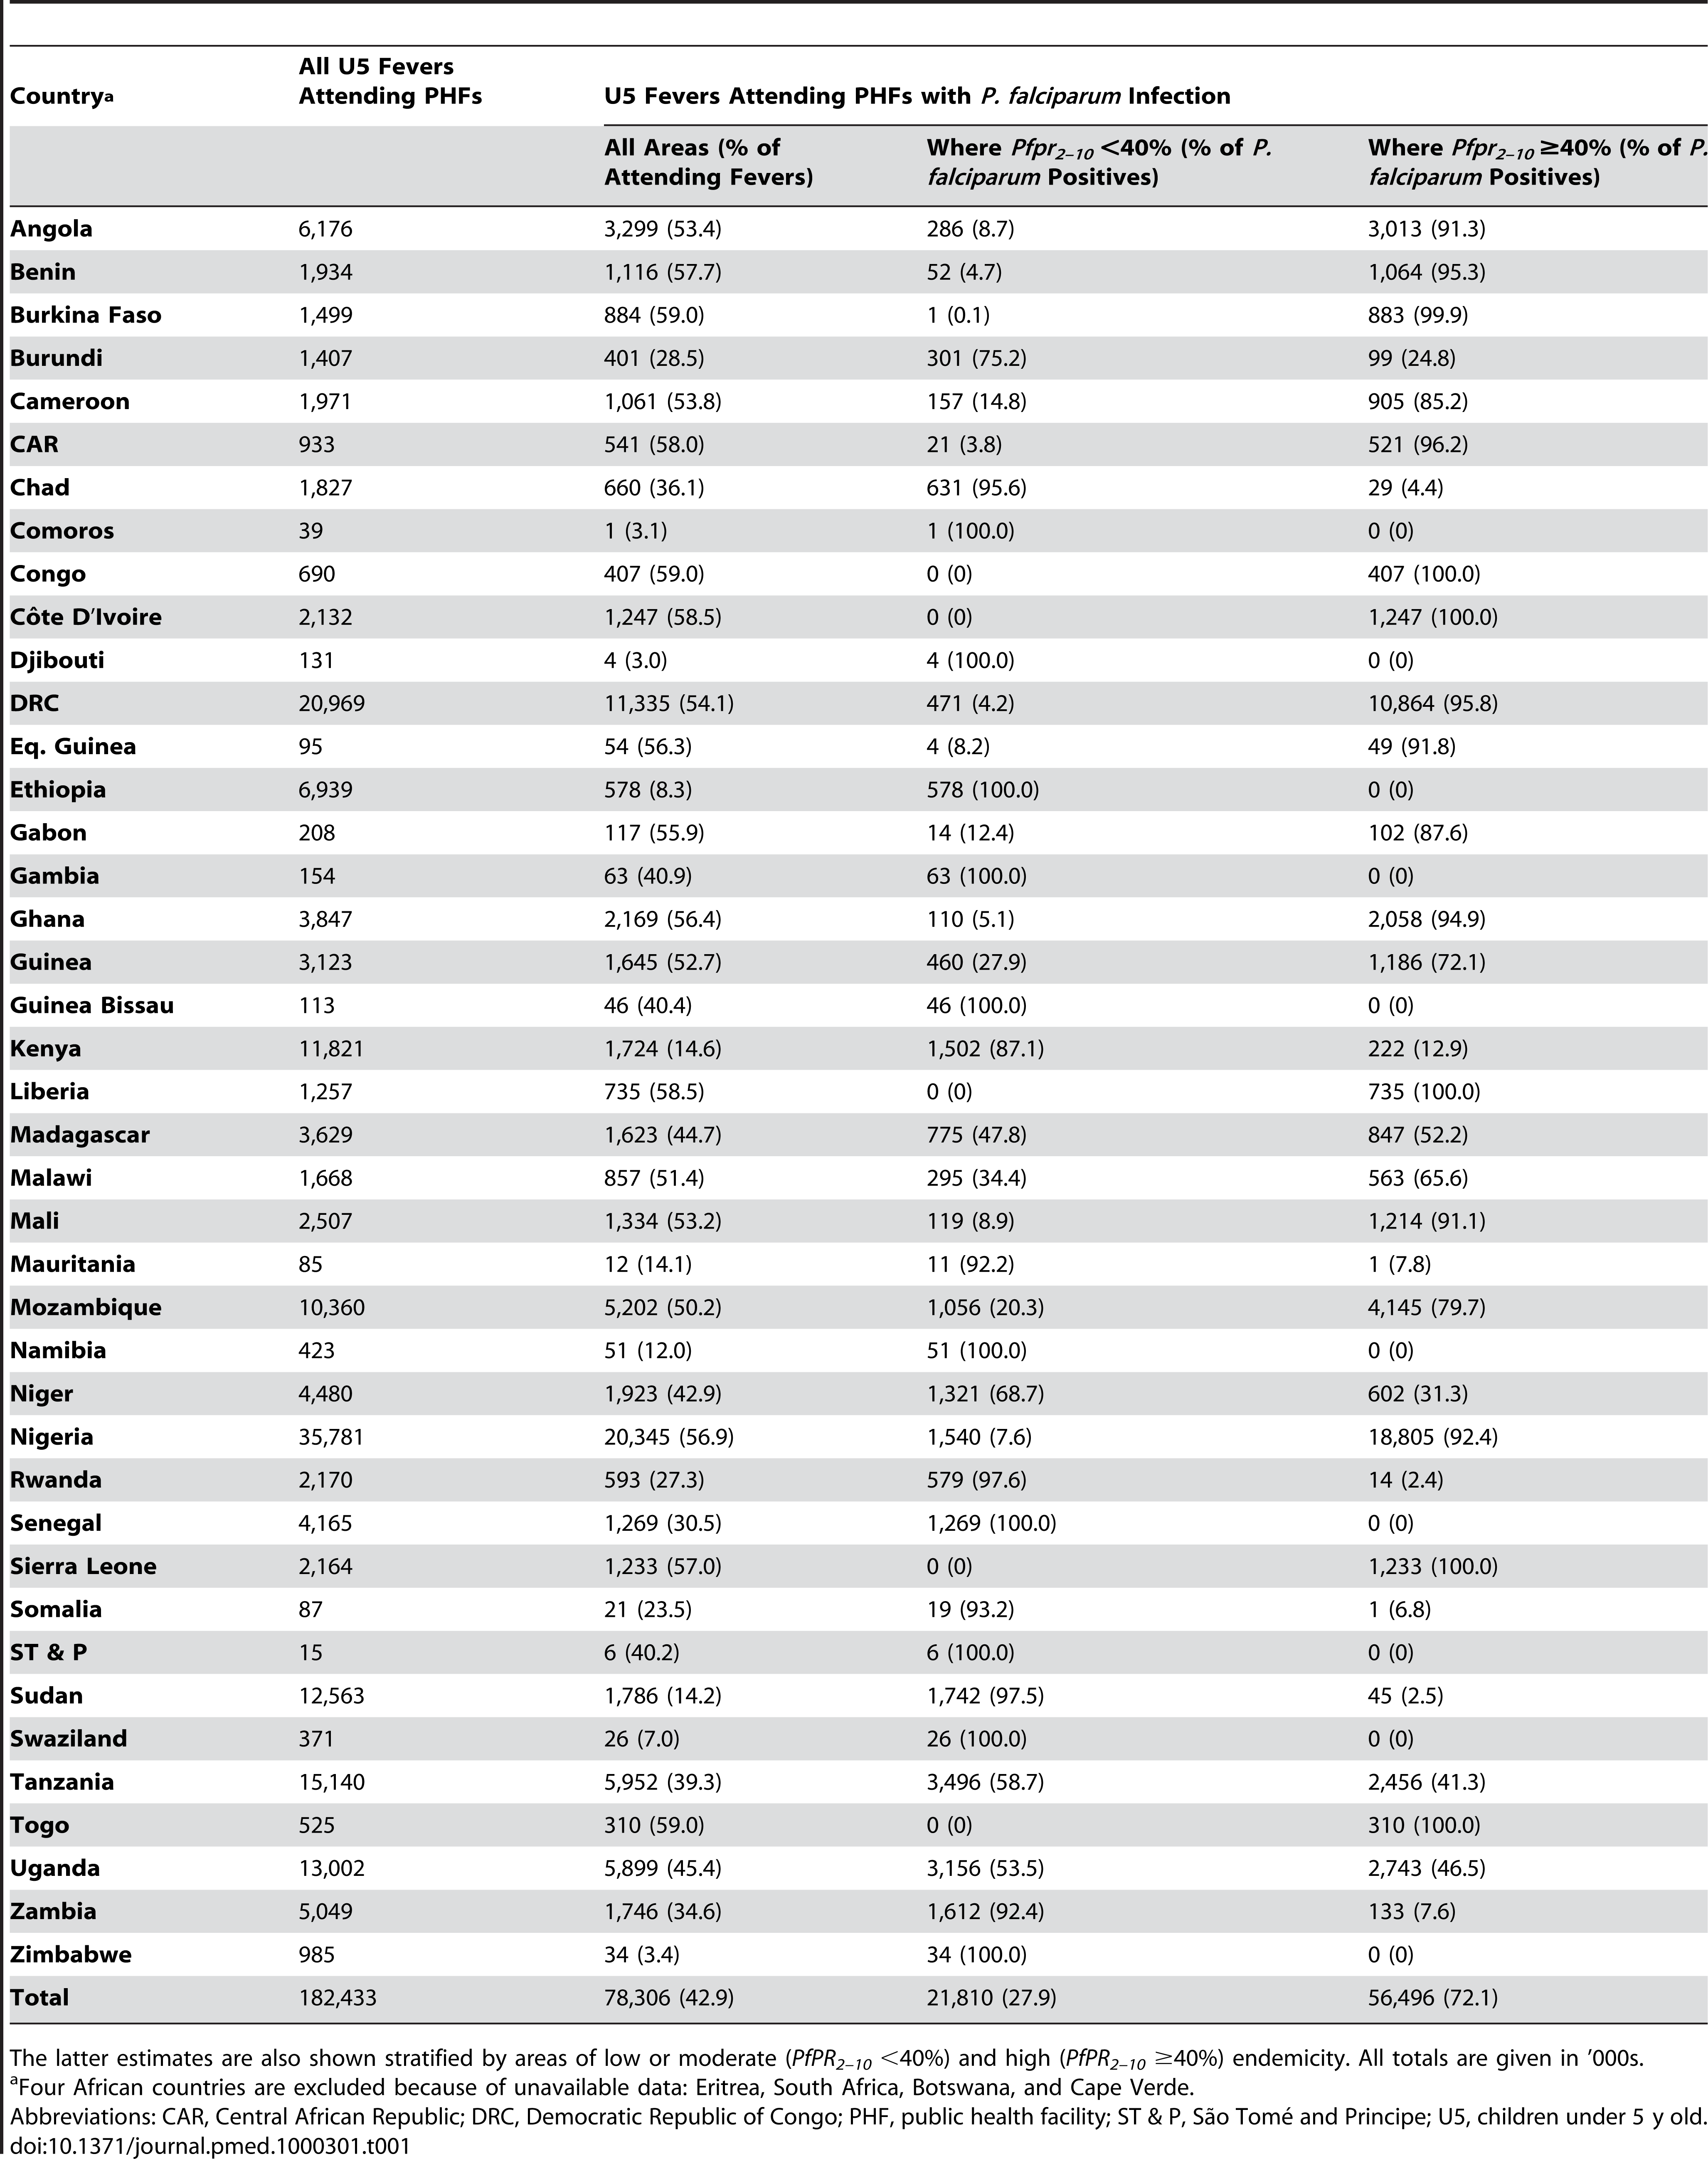 Estimated total and <i>P. falciparum</i> positive paediatric fevers attending public health facilities in Africa in 2007.